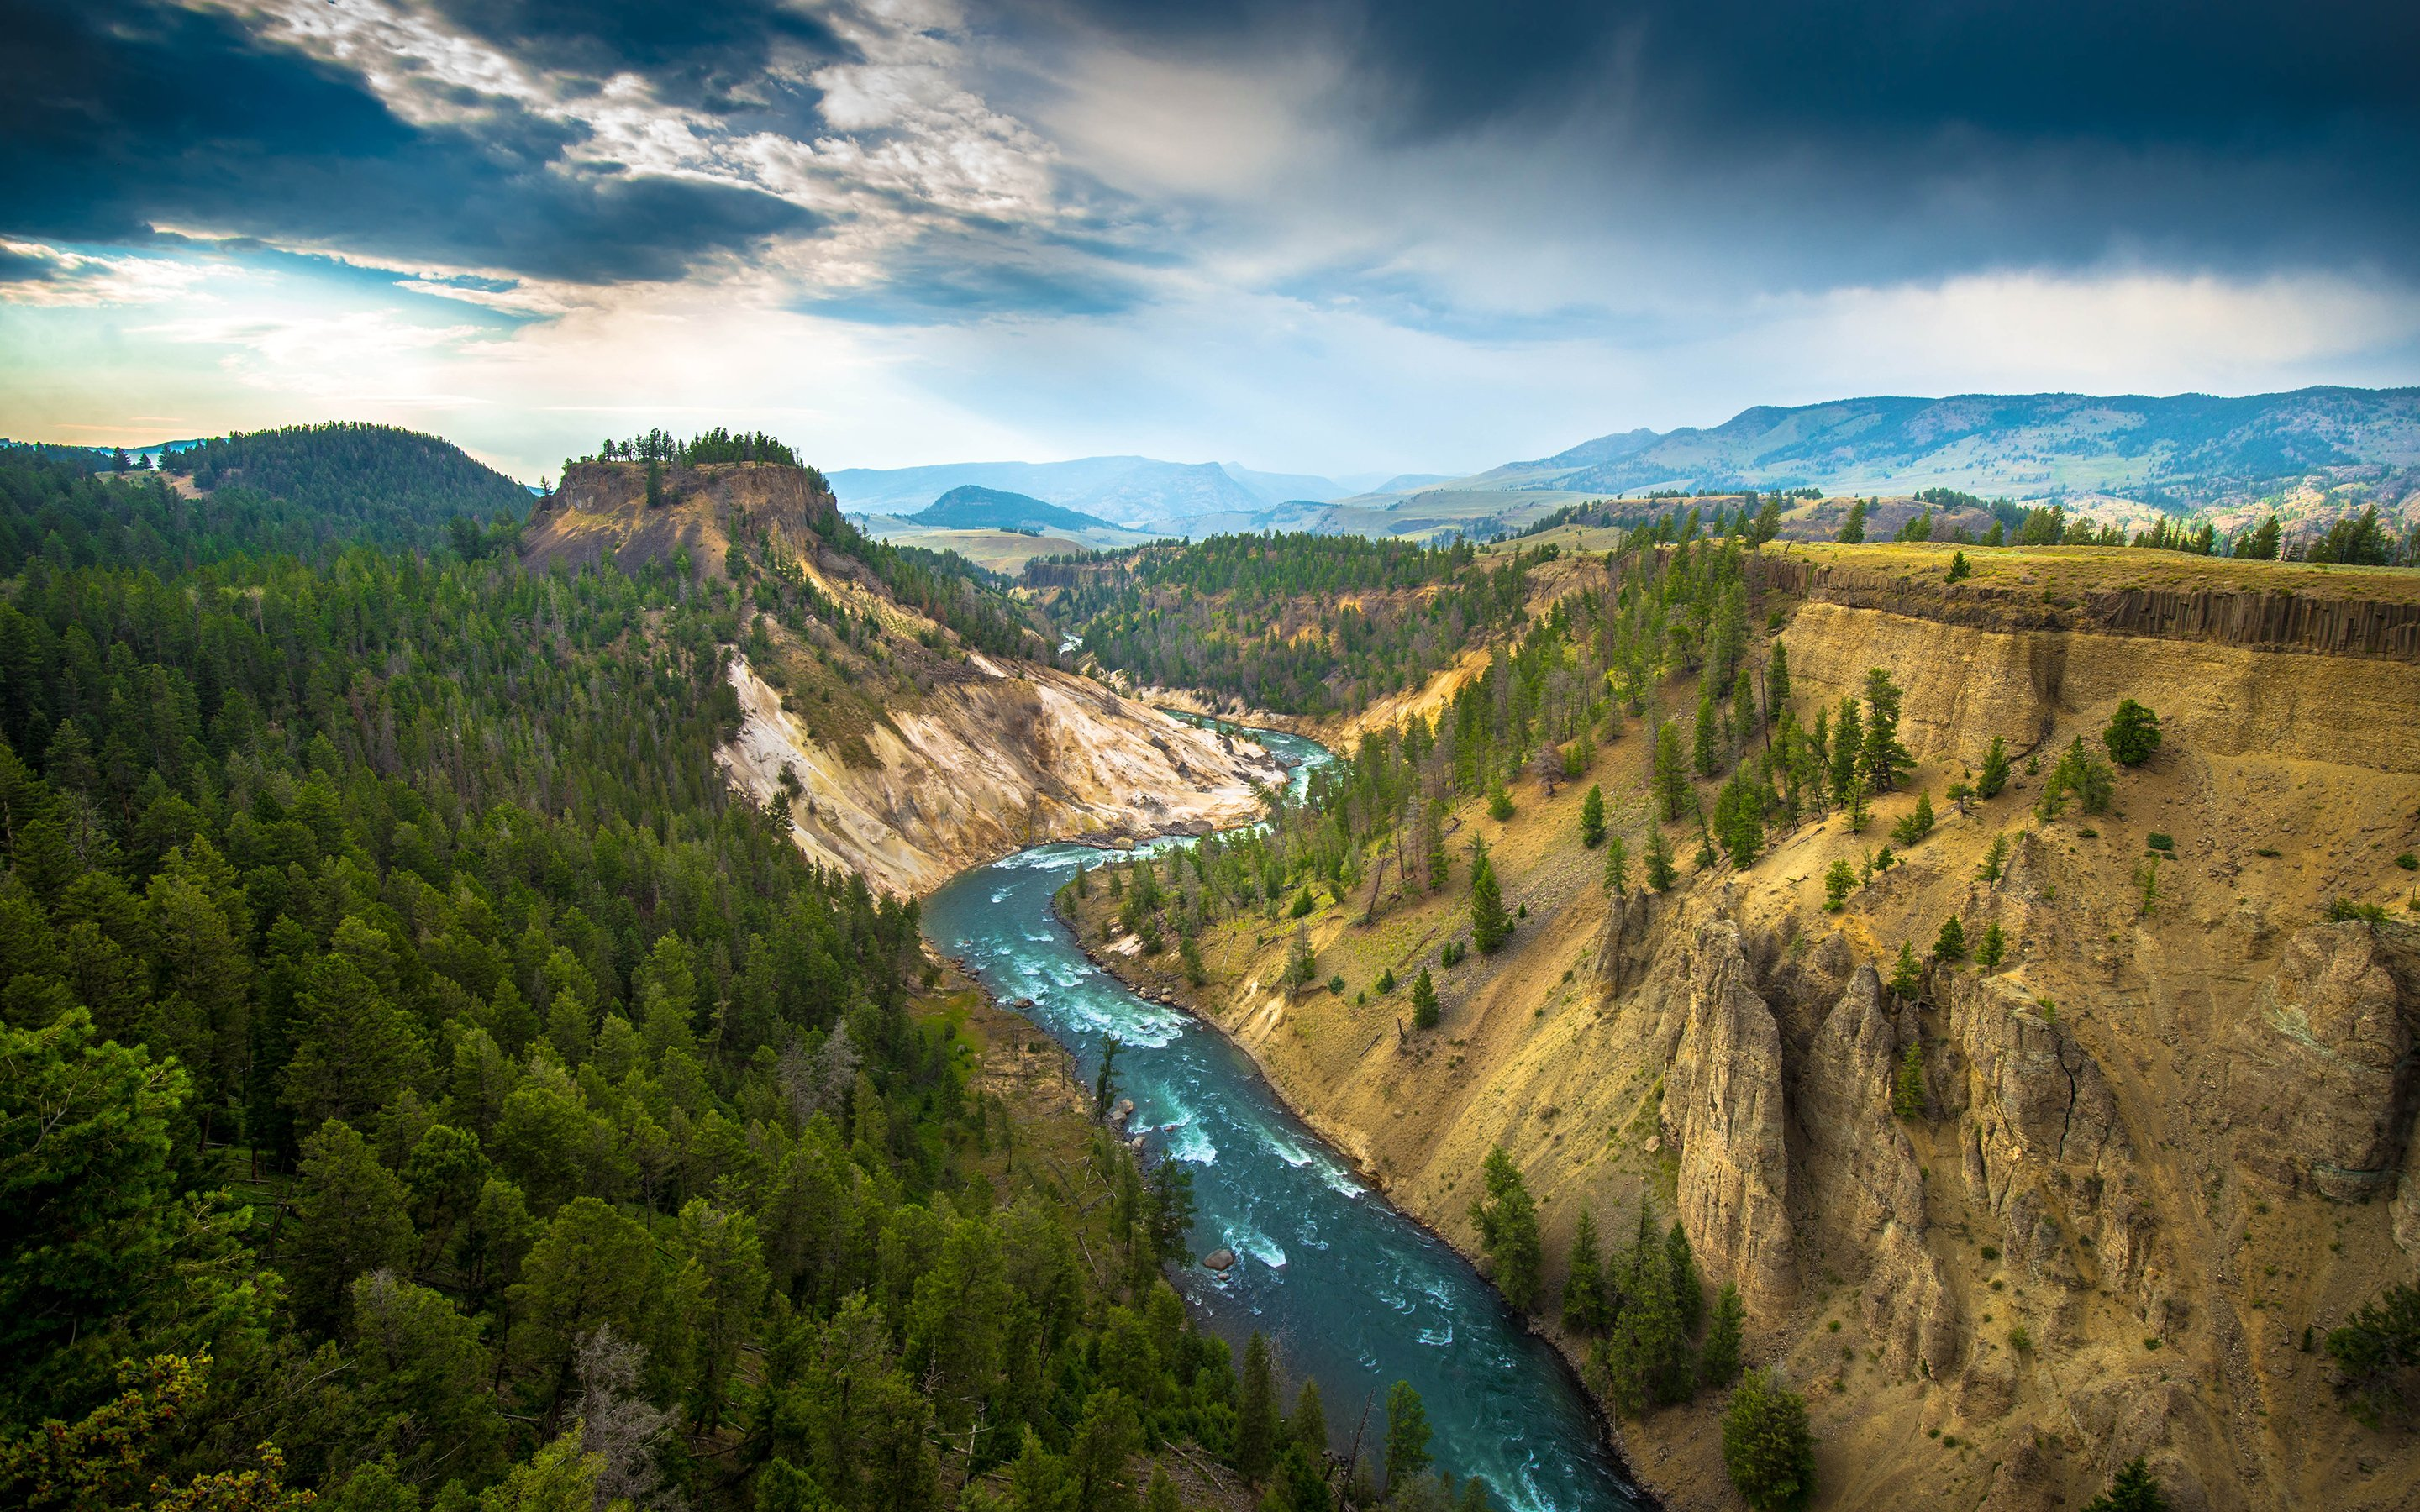 Yellowstone National Park HD Wallpaper Background Image 2880x1800